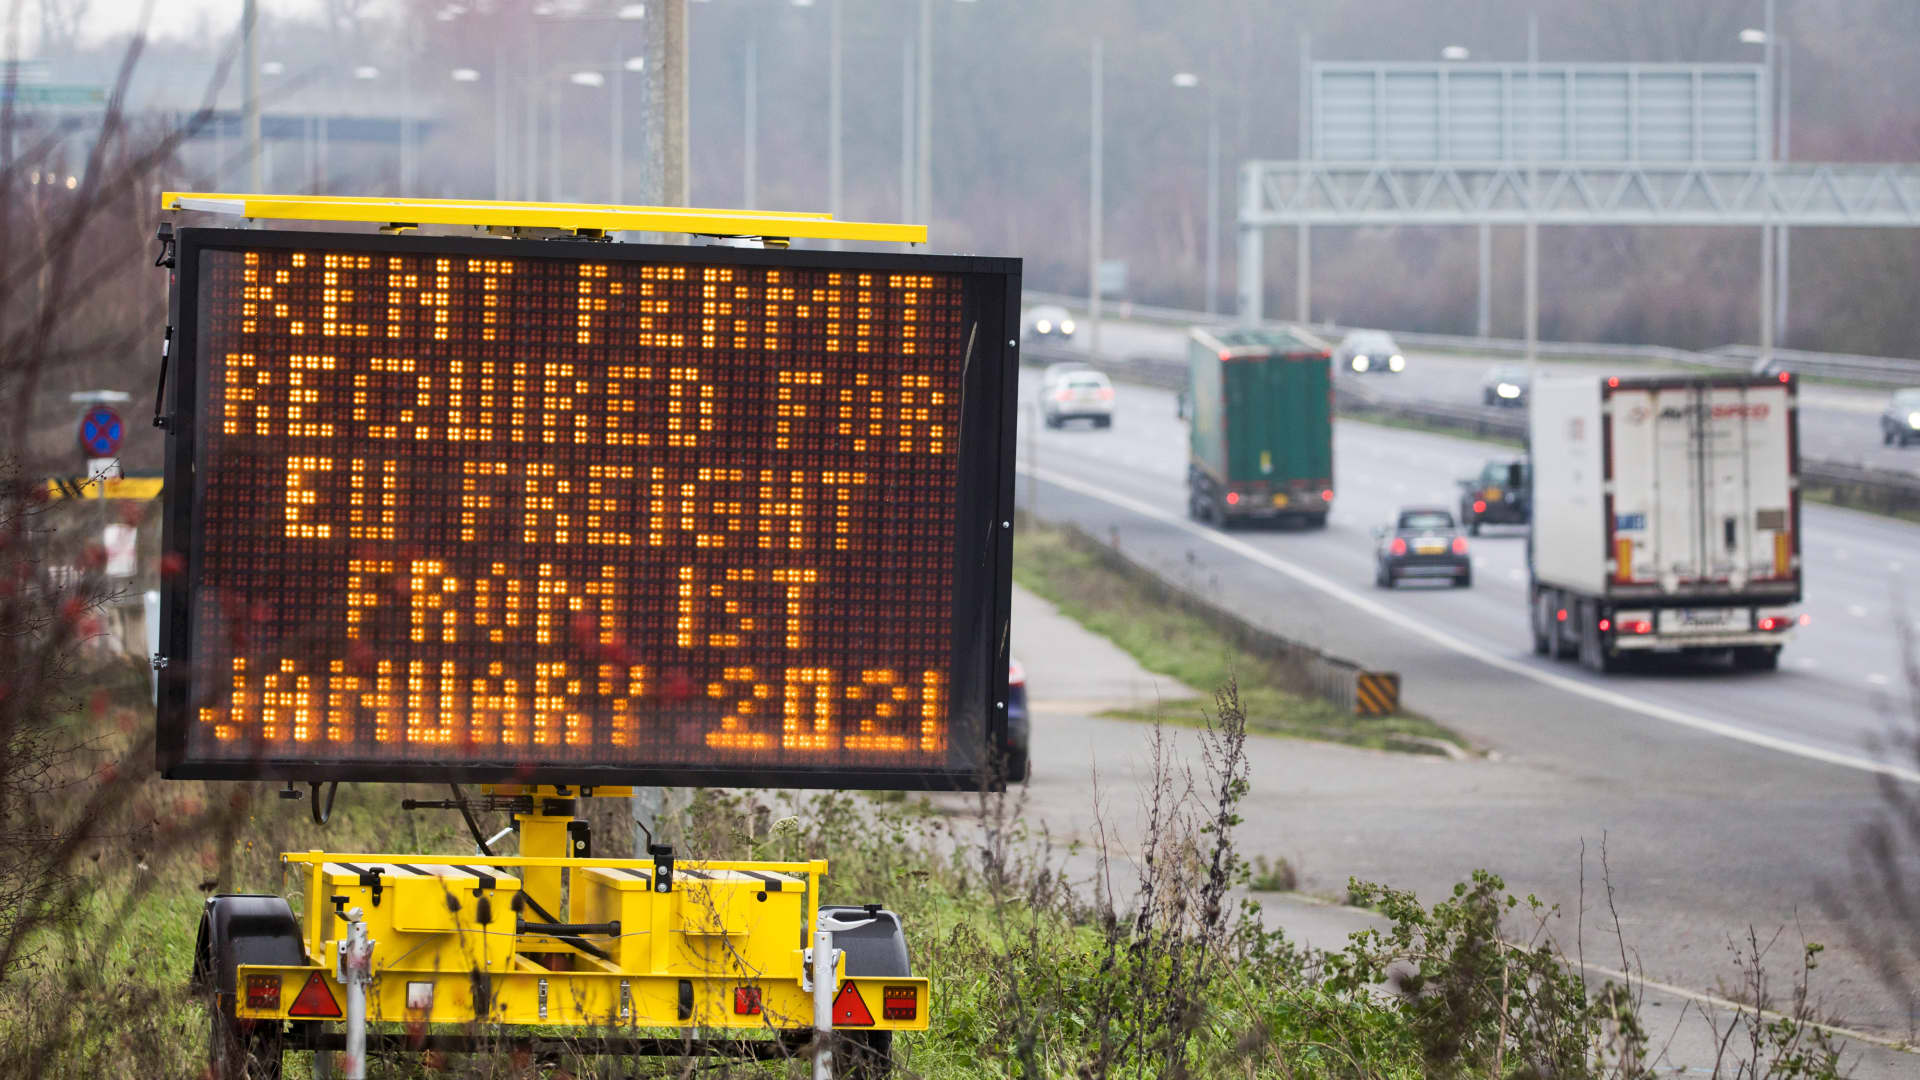 A sign for truck drivers and hauliers on the M2 motorway near Gravesend, U.K., on Thursday, Dec. 31, 2020.